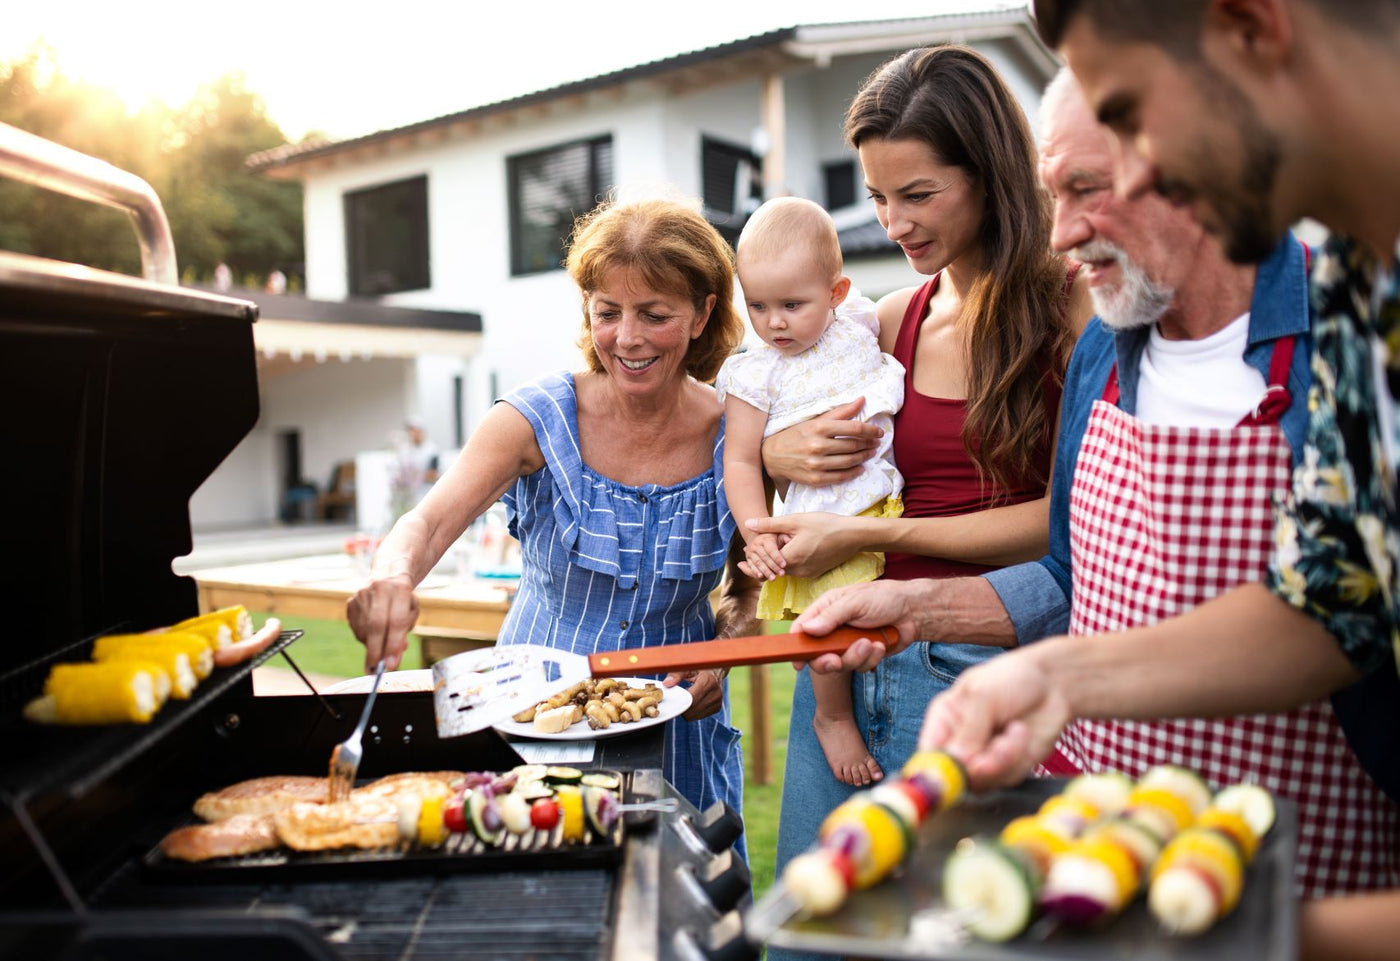 5 Tips to Make a BBQ More Gluten Free Friendly